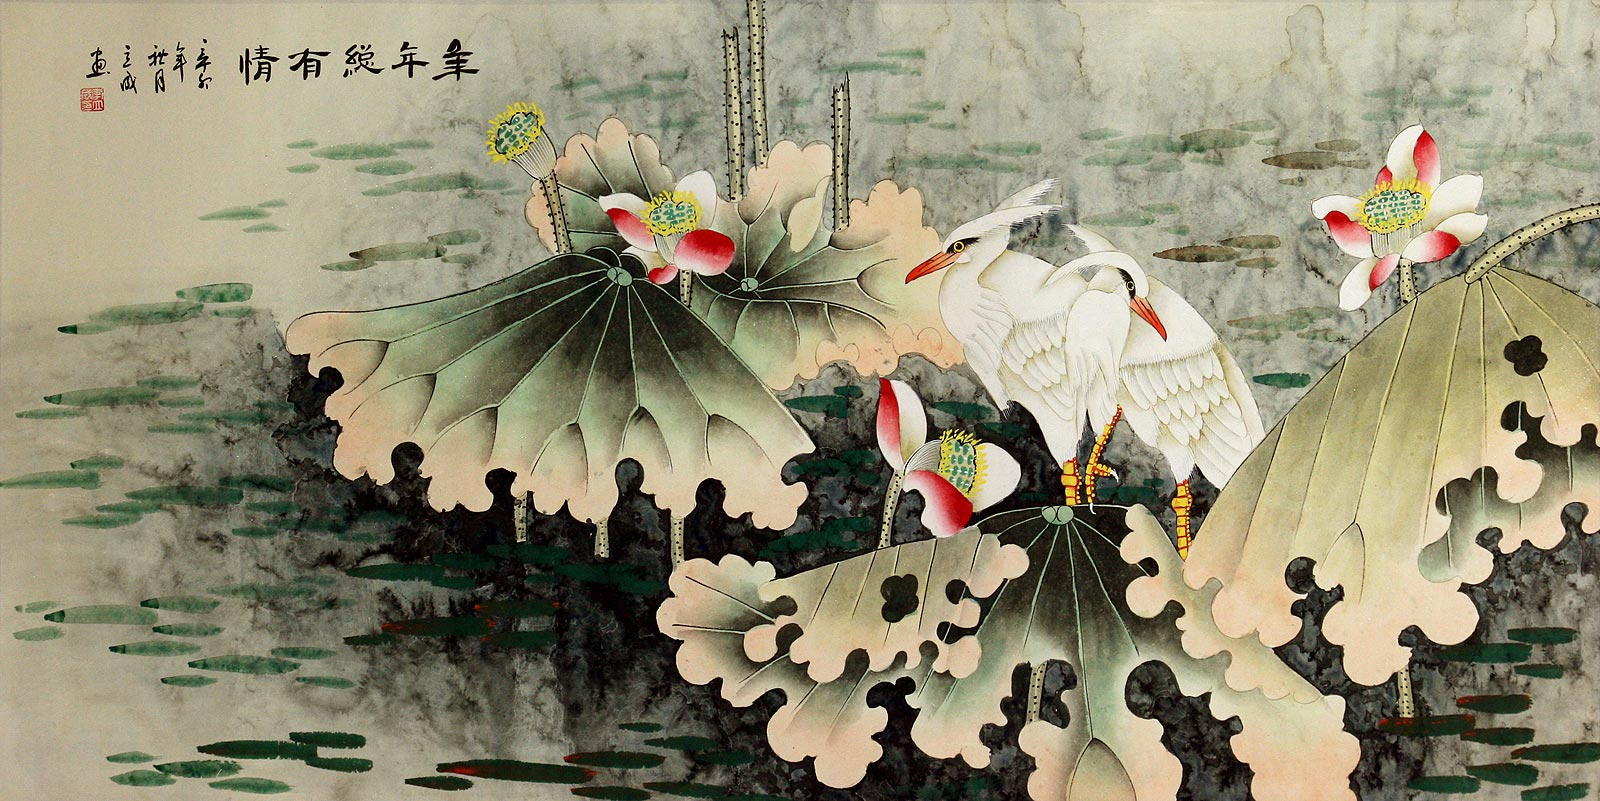 Egrets and Lotus Flowers - Eternal Love - Large Painting